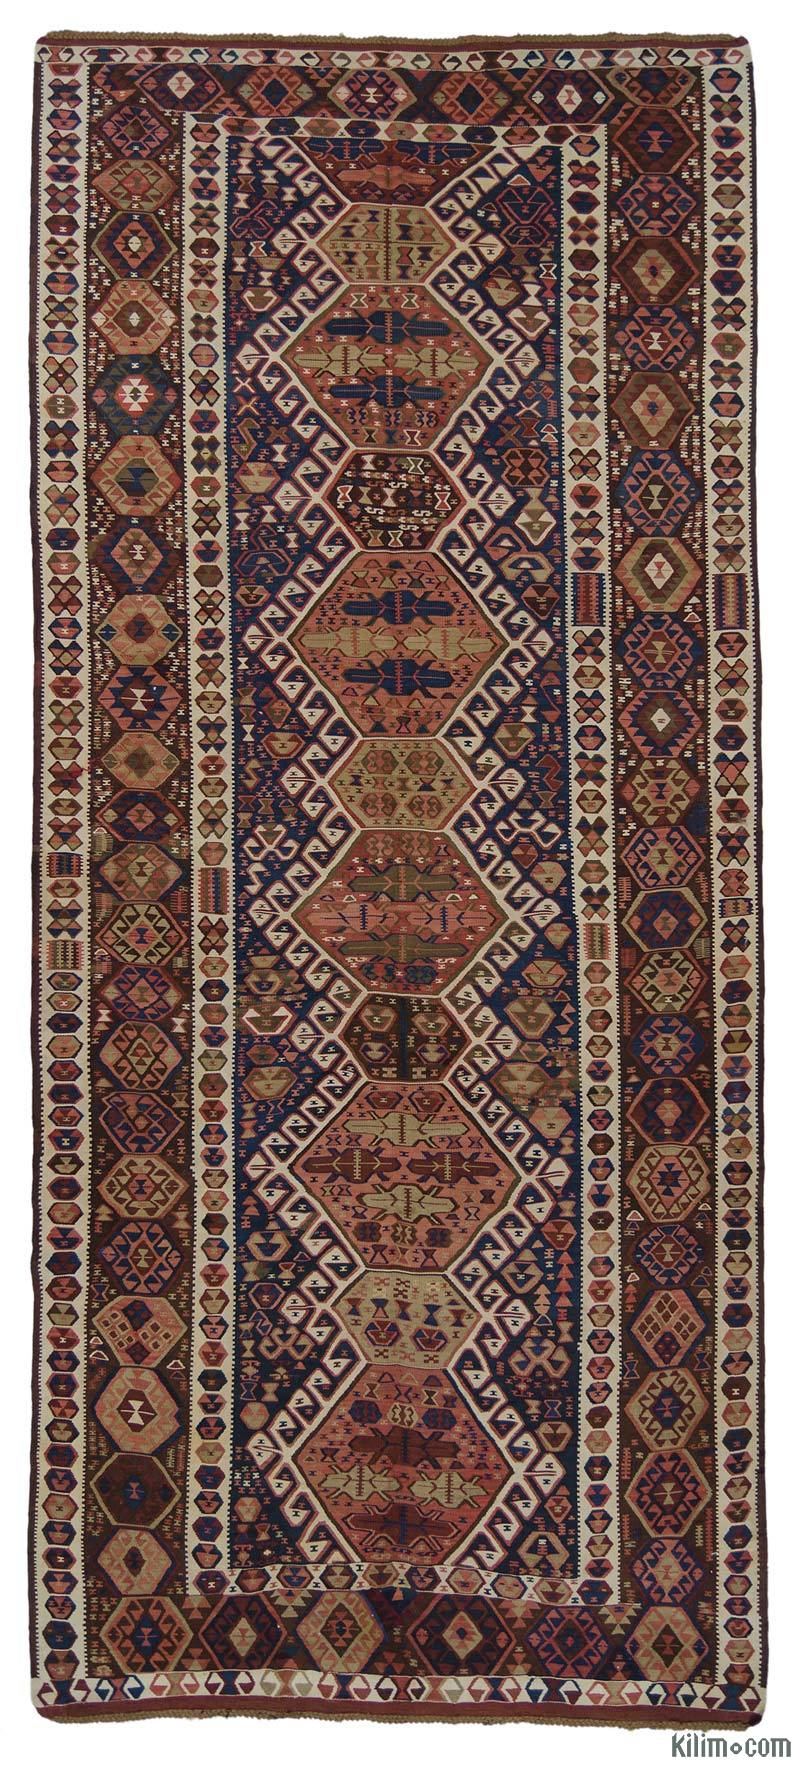 k0015966 blue antique kagizman kilim rug. Black Bedroom Furniture Sets. Home Design Ideas